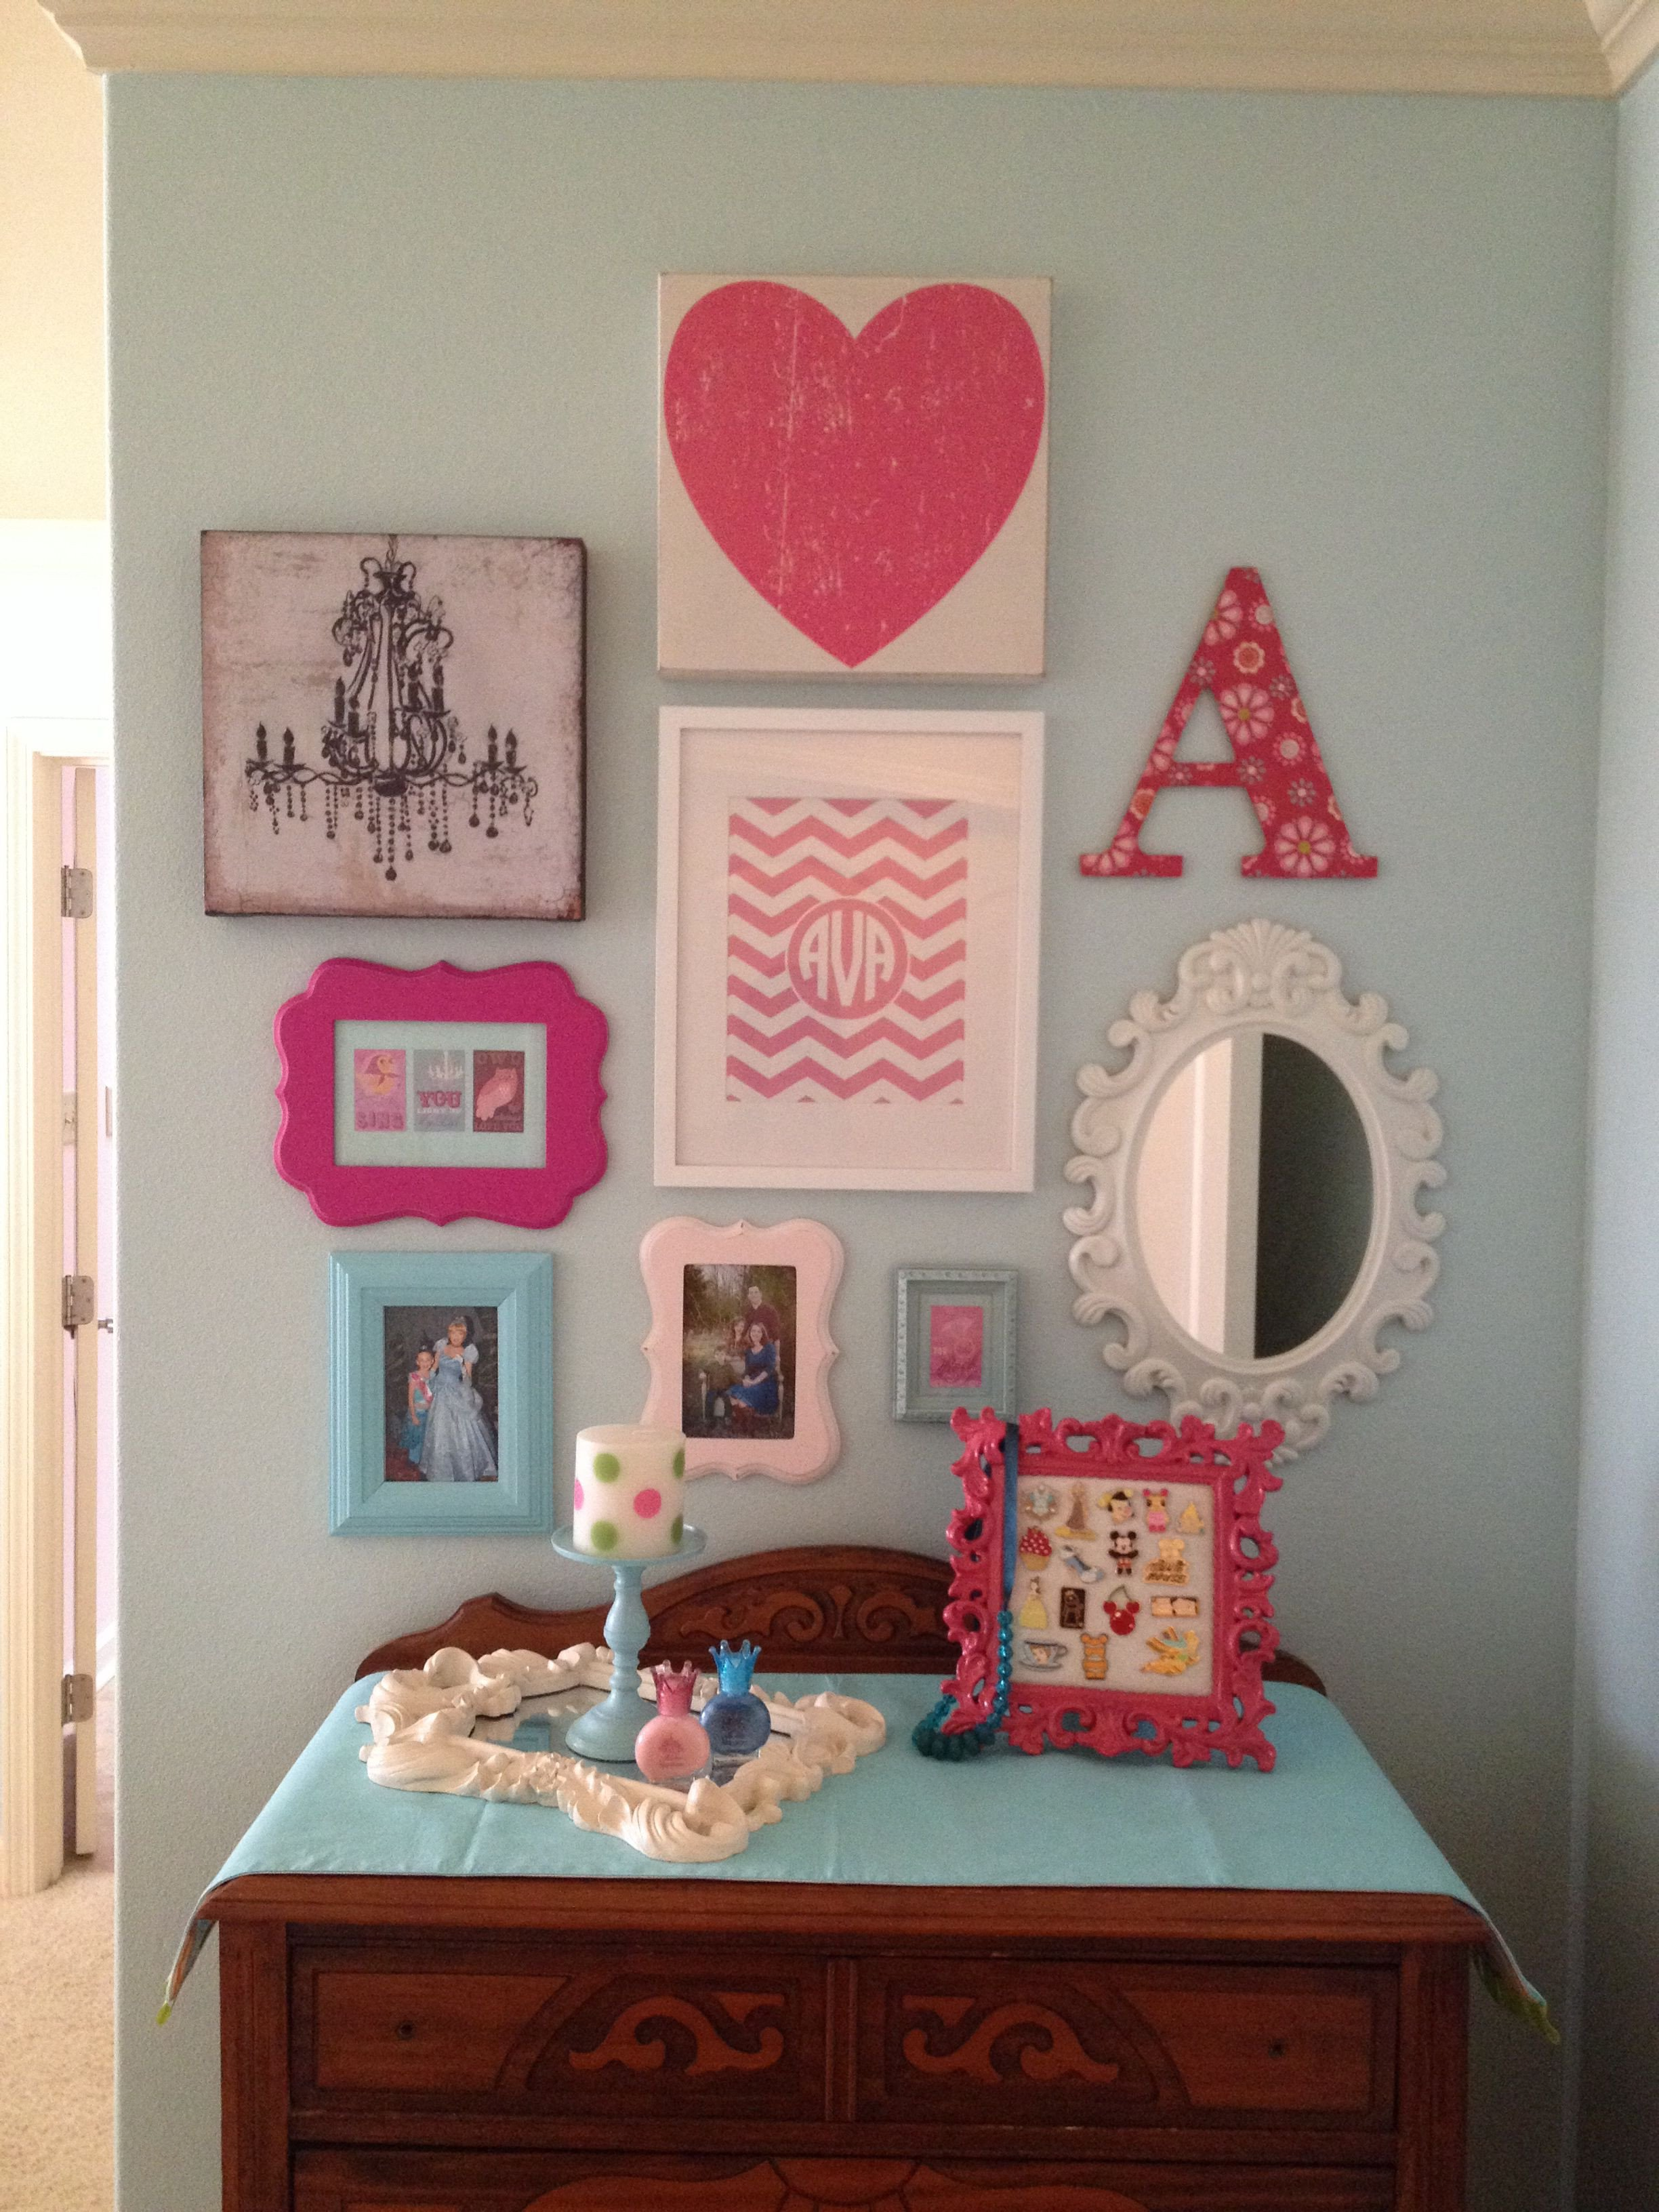 Homemade Wall Decoration Ideas for Bedroom Luxury Girls Room Gallery Wall